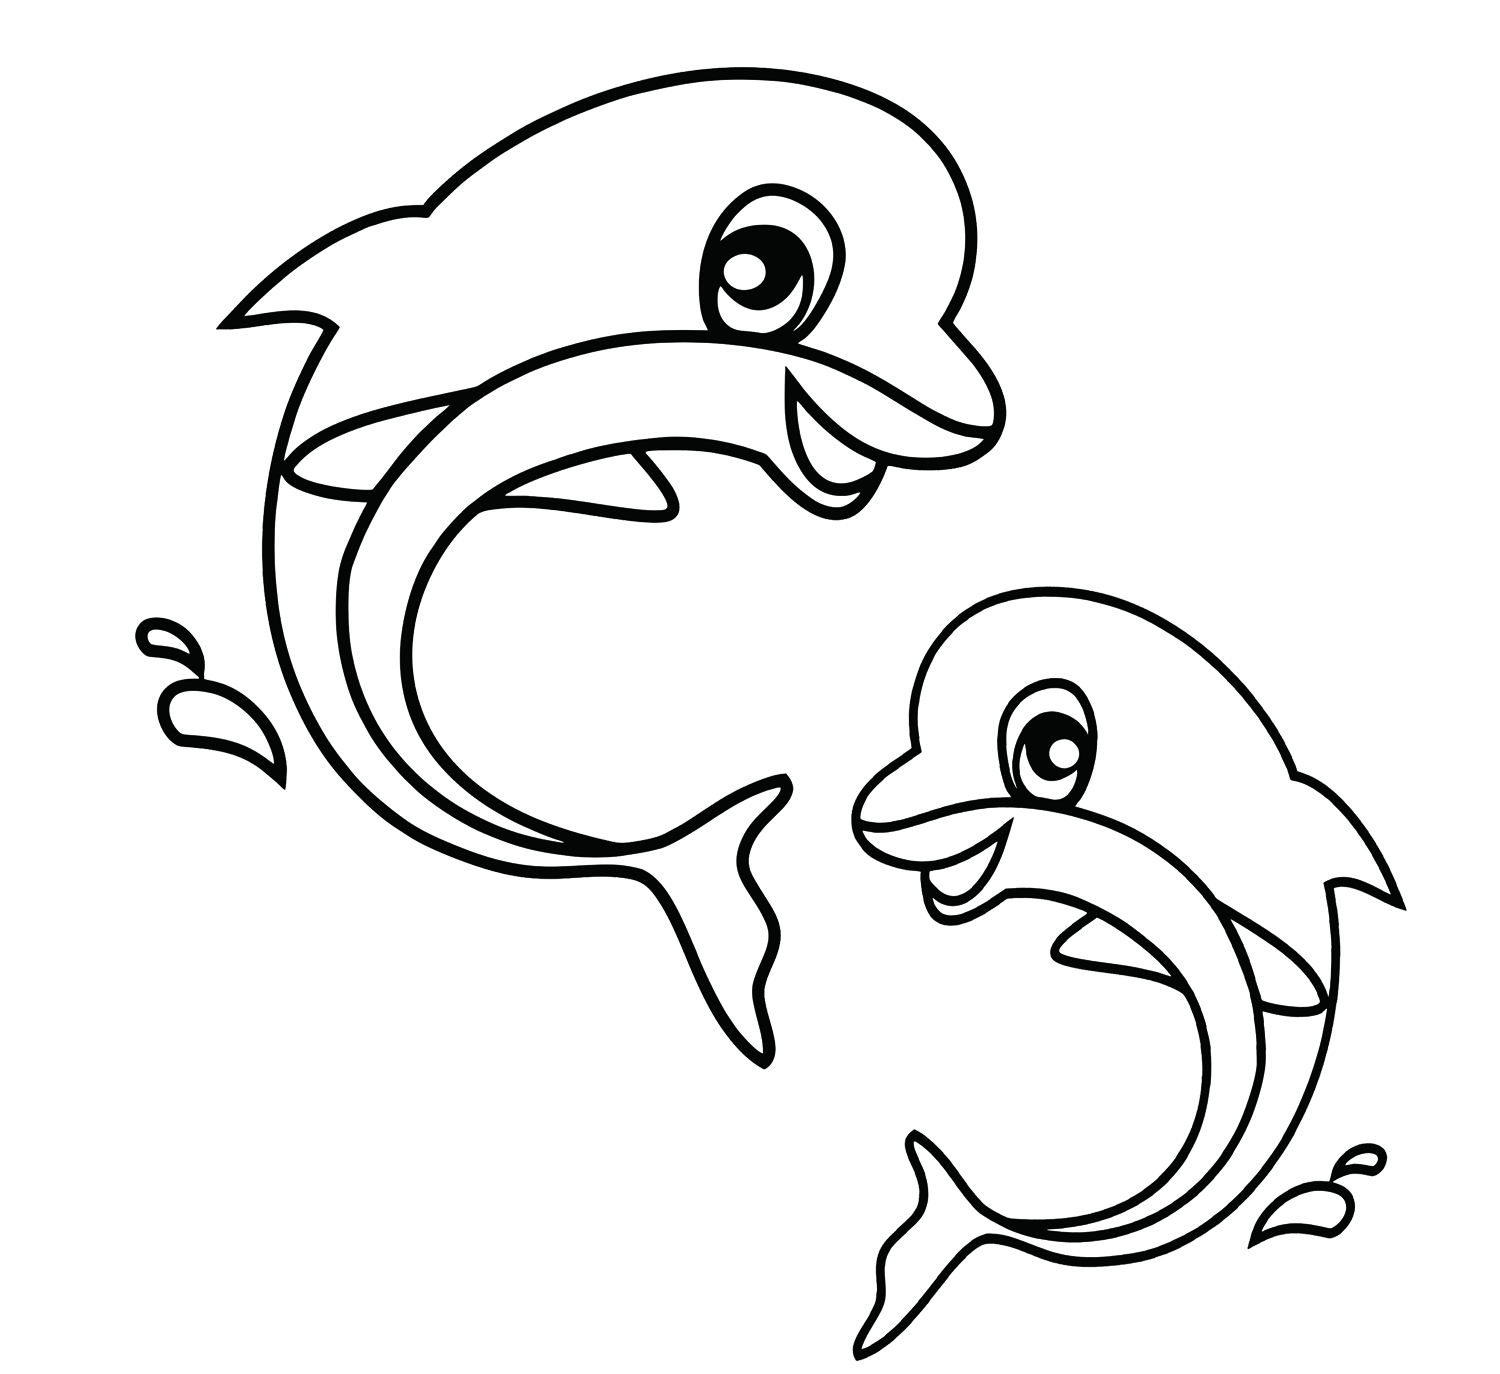 1500x1374 Great Cute Animal Coloring Pages Best S Of Sea Animals Free